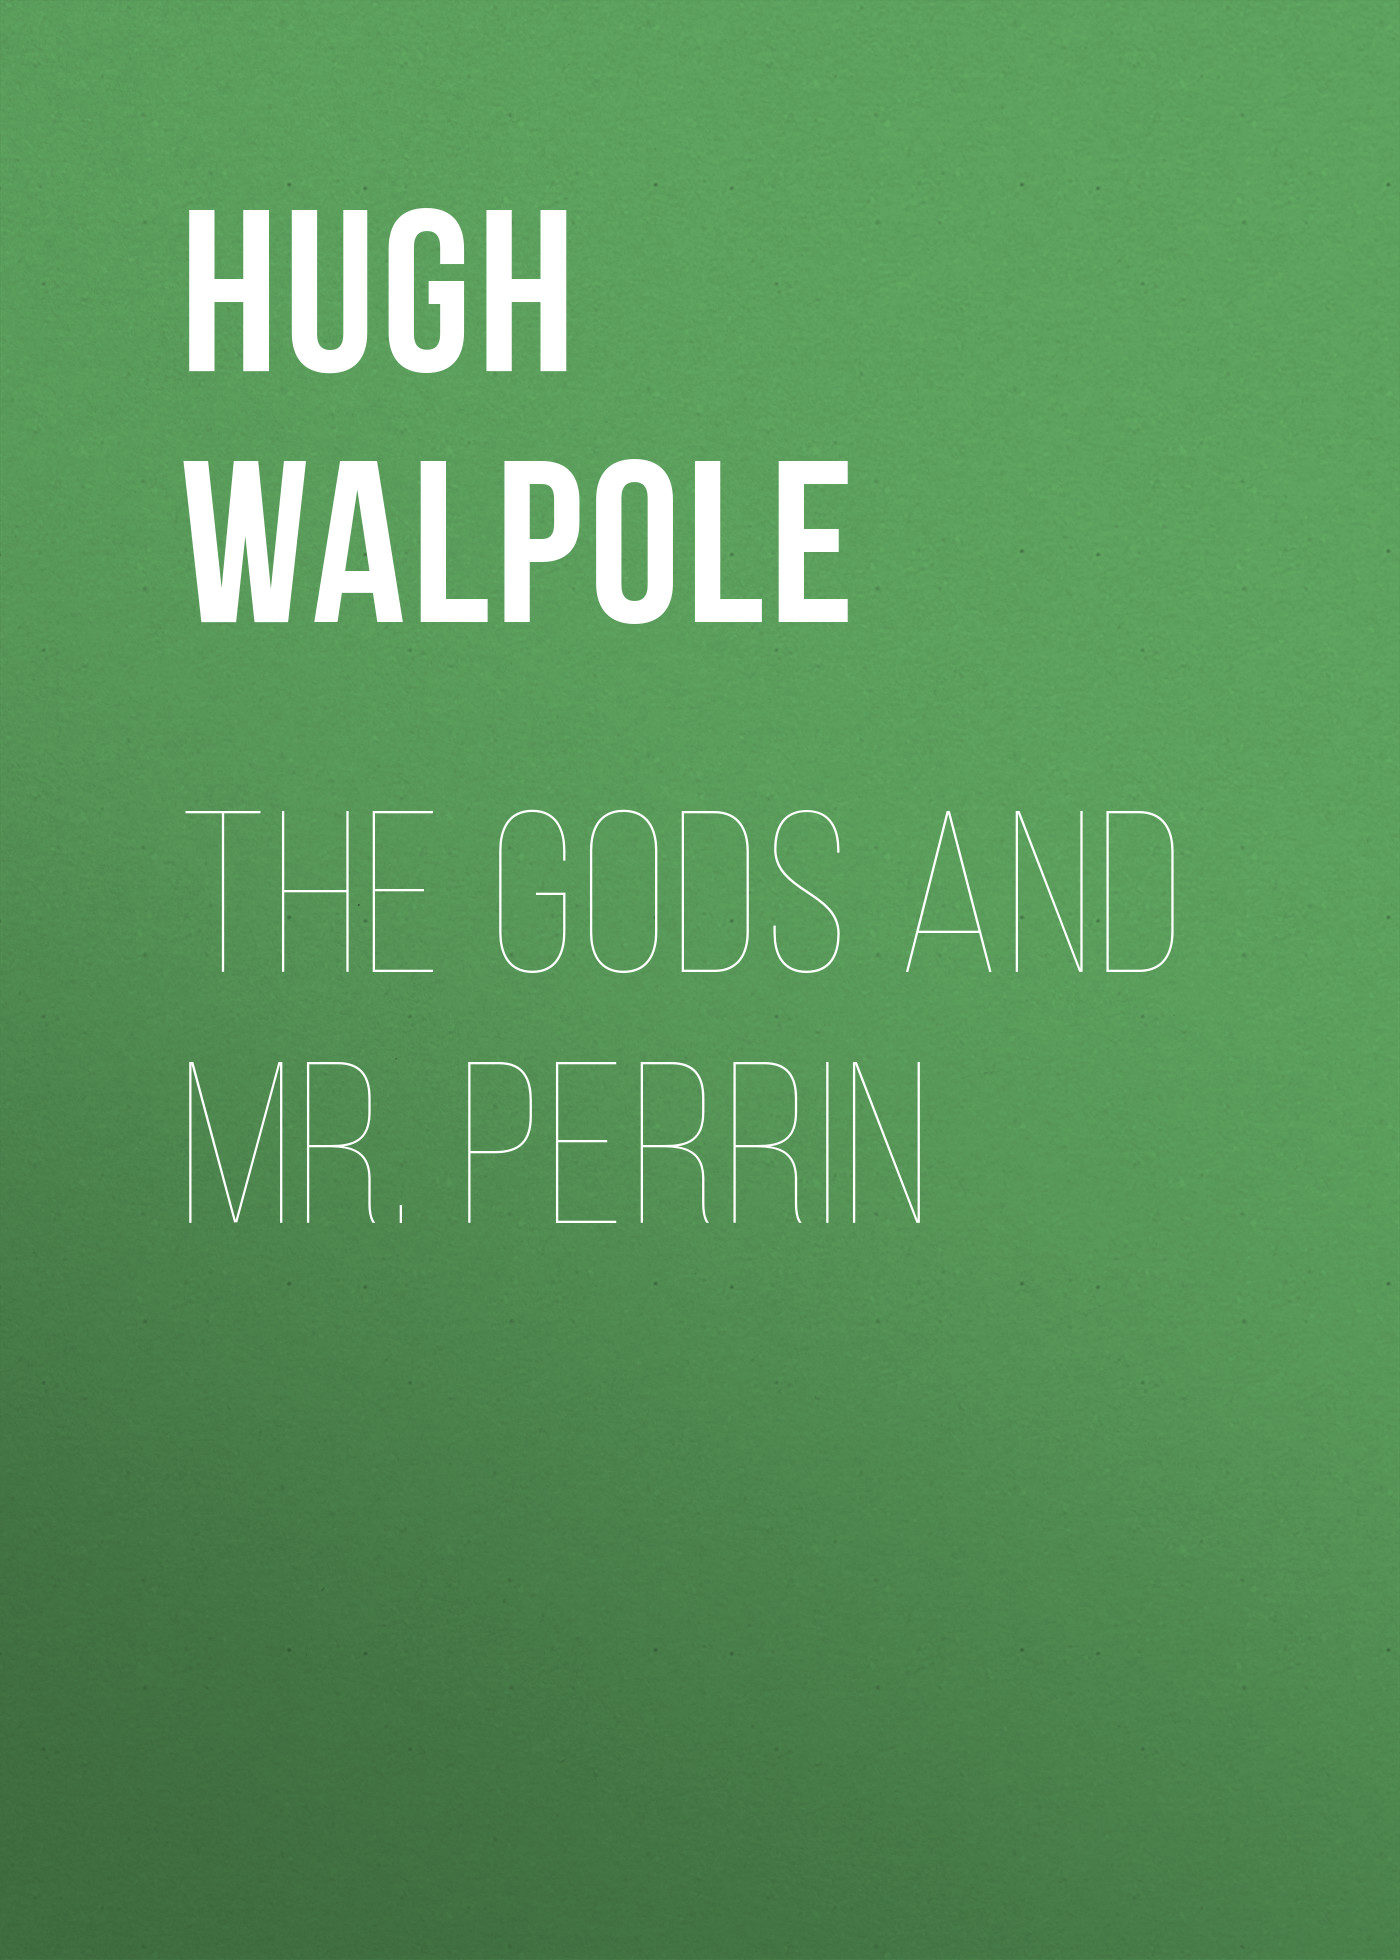 купить Hugh Walpole The Gods and Mr. Perrin